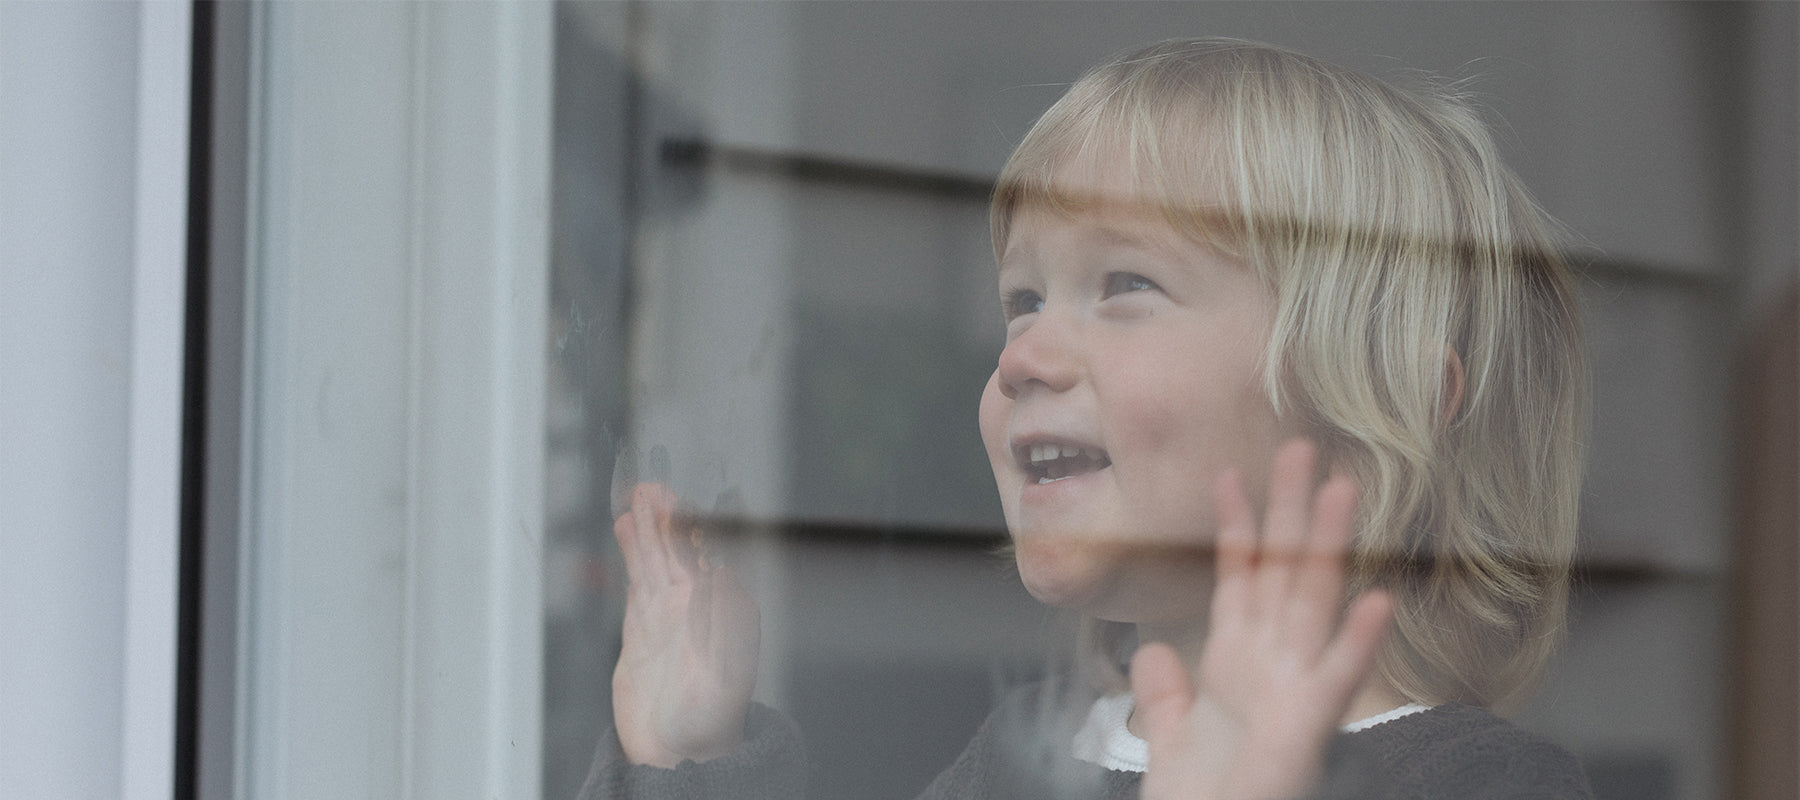 photo of young boy looking through the window with his hands on the glass smiling